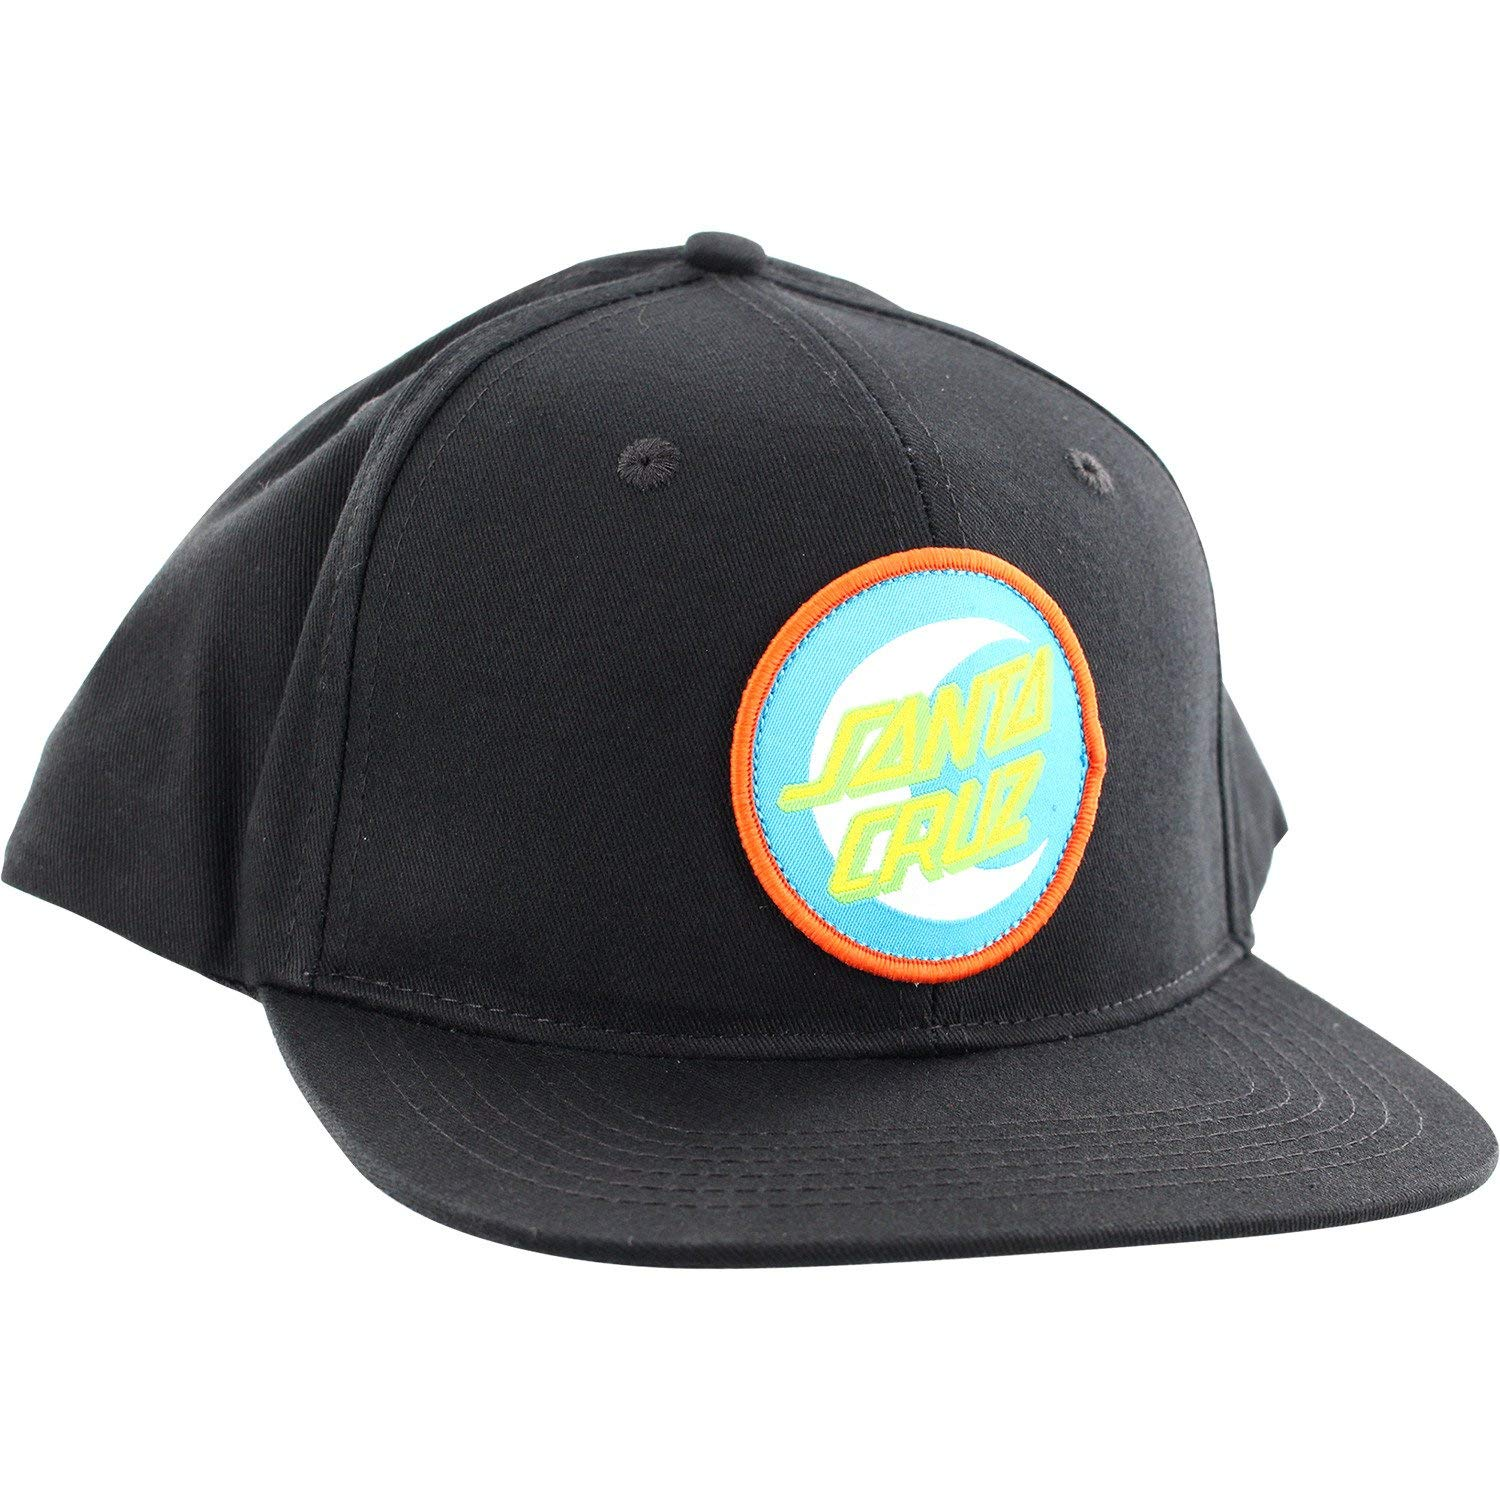 db44f0fef7fd3 Get Quotations · Santa Cruz Skateboards Moon Dot Badge Black Snapback Hat -  Adjustable